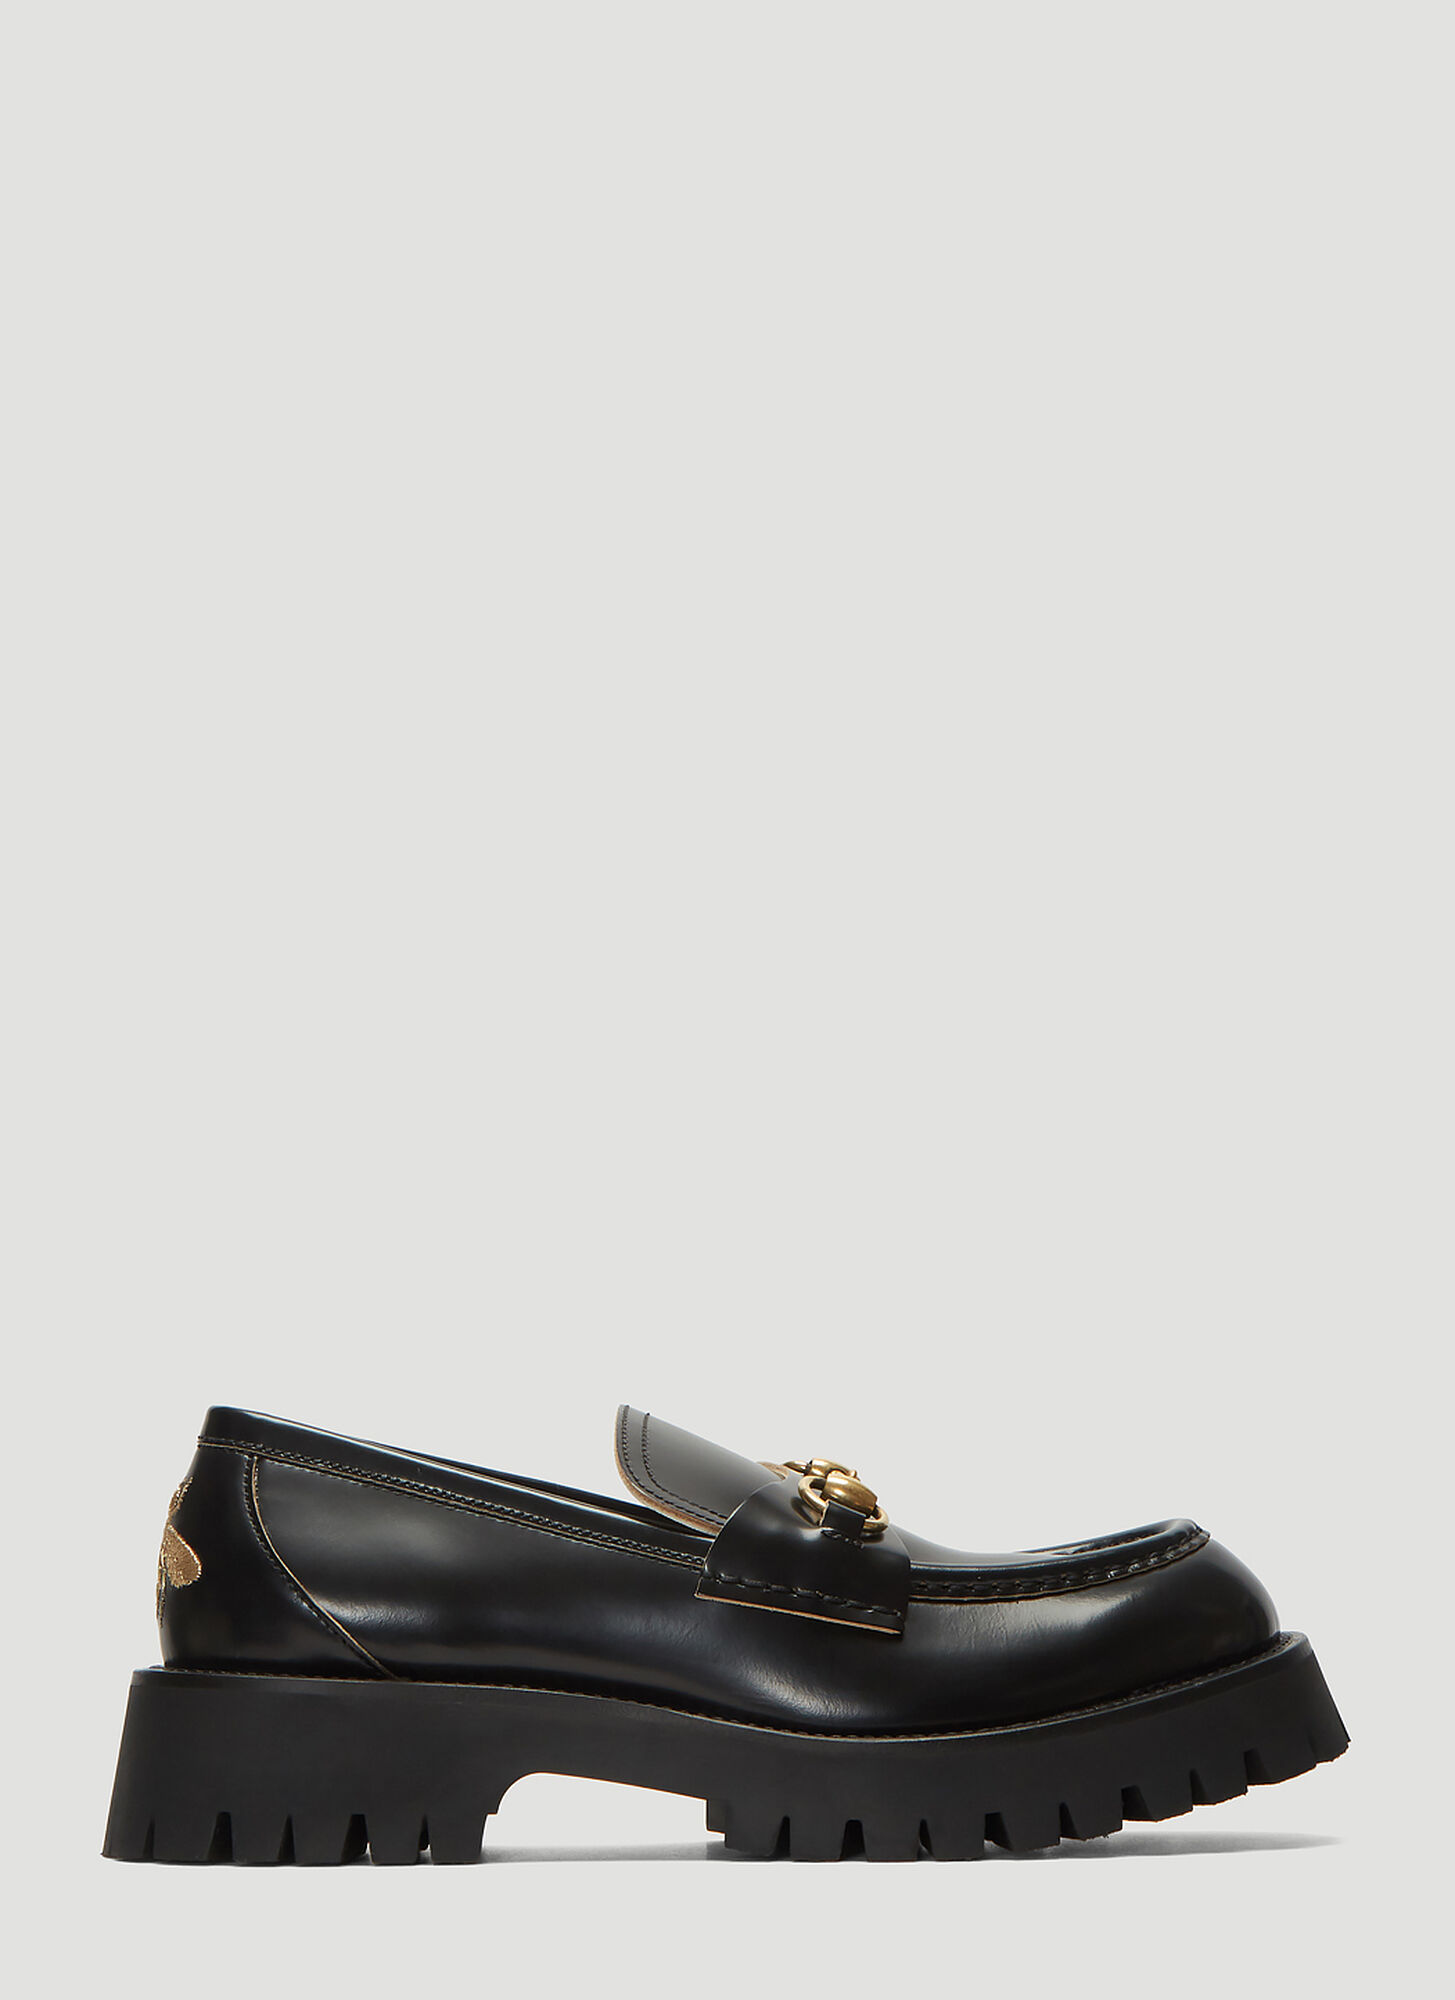 Gucci Chunky Lug Sole Loafers in Black